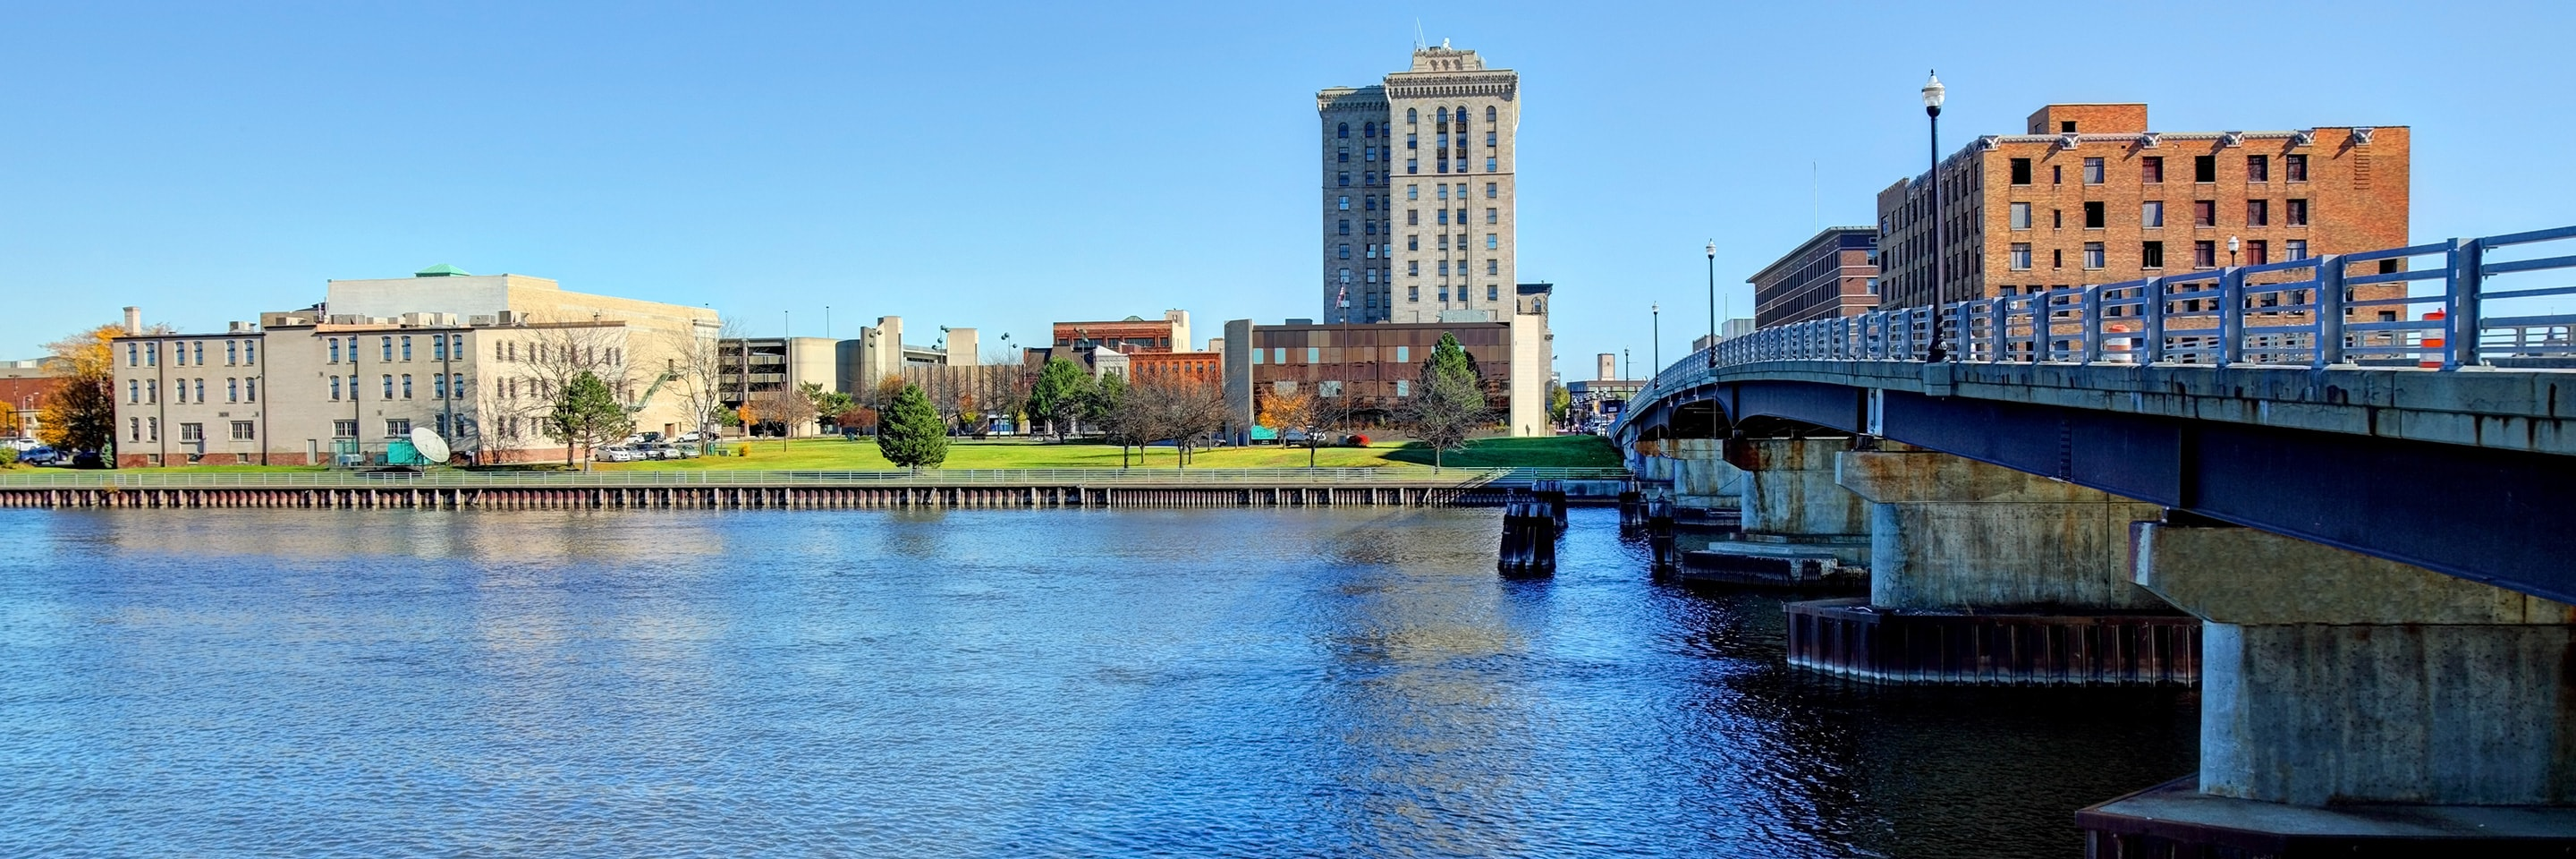 Hotels in Saginaw